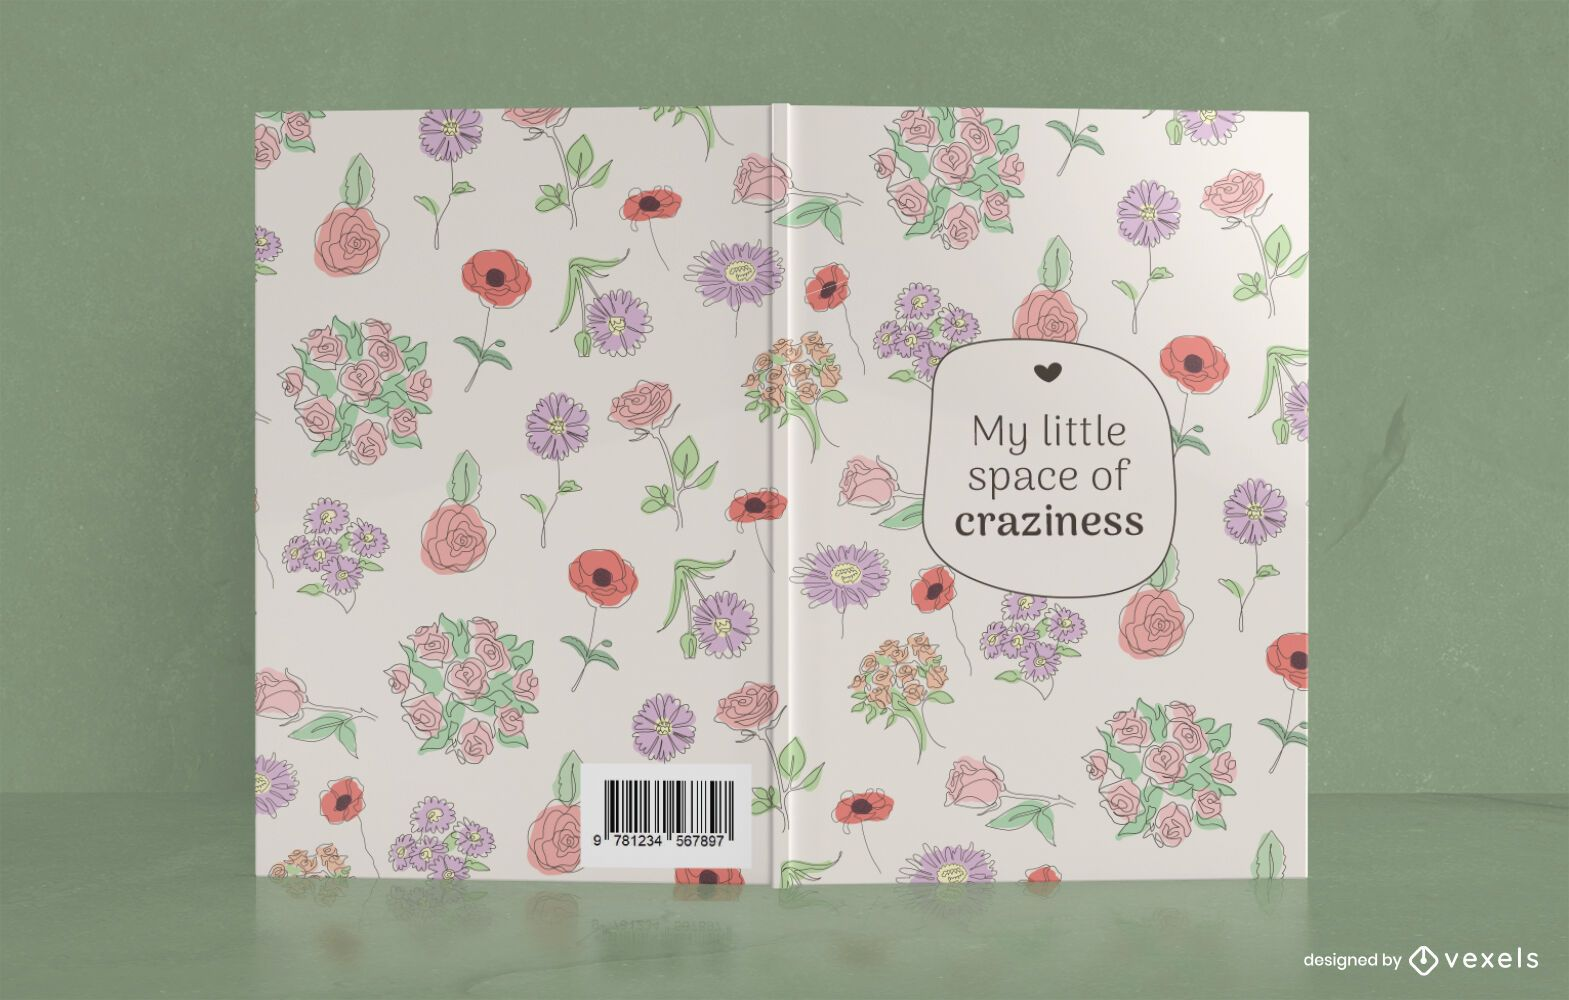 Floral Space of Craziness Book Cover Design